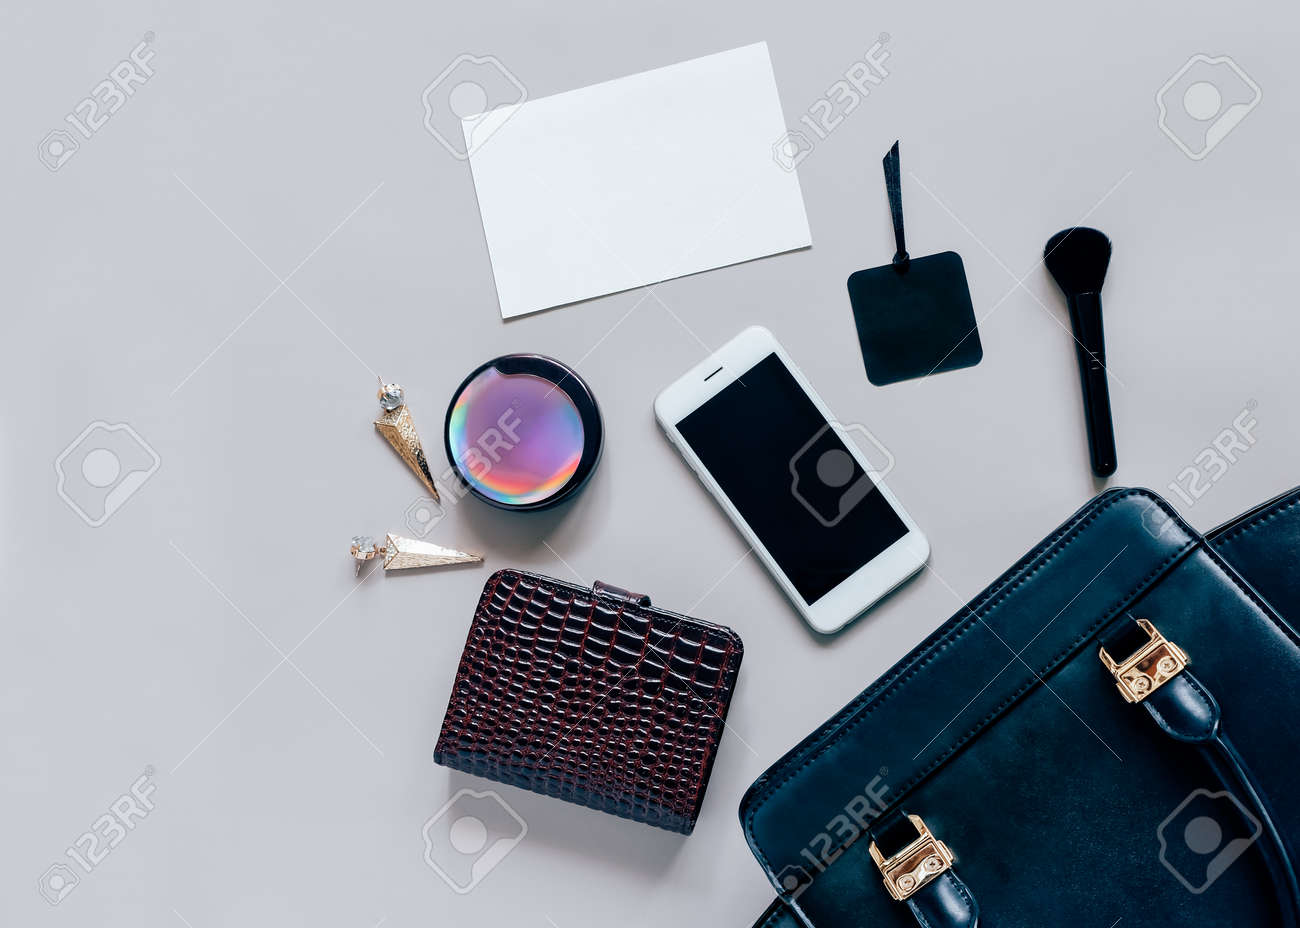 hight resolution of flat lay of black leather woman bag open out with cosmetics accessories wallet